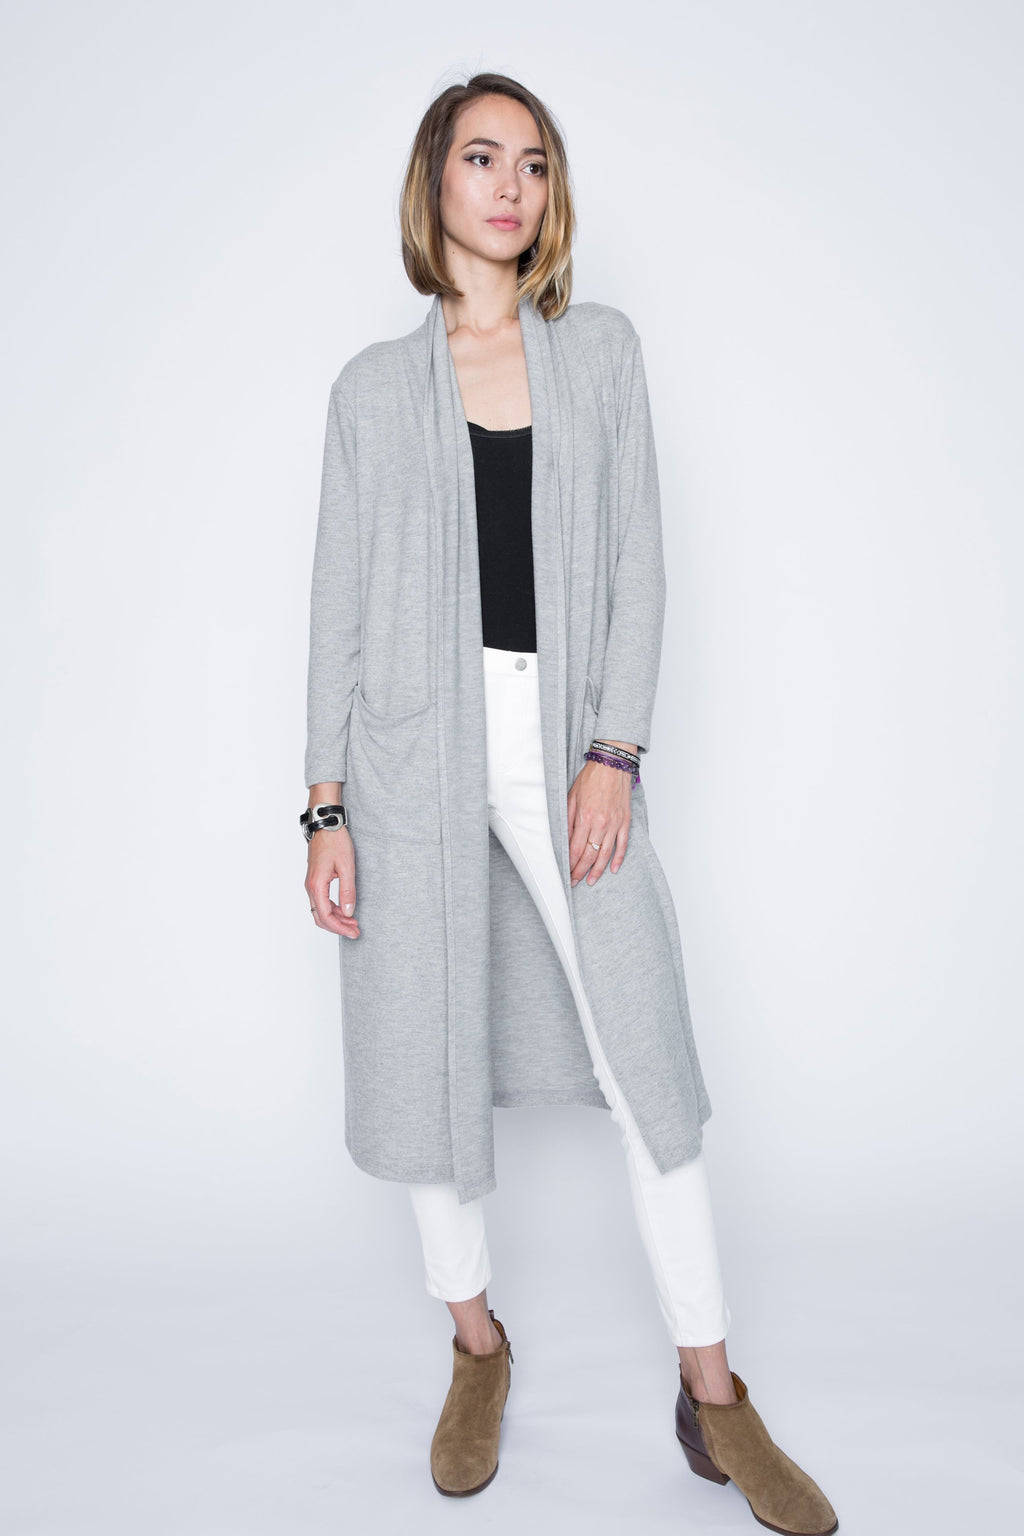 New! Long Sweater Cardigan with Shawl Collar